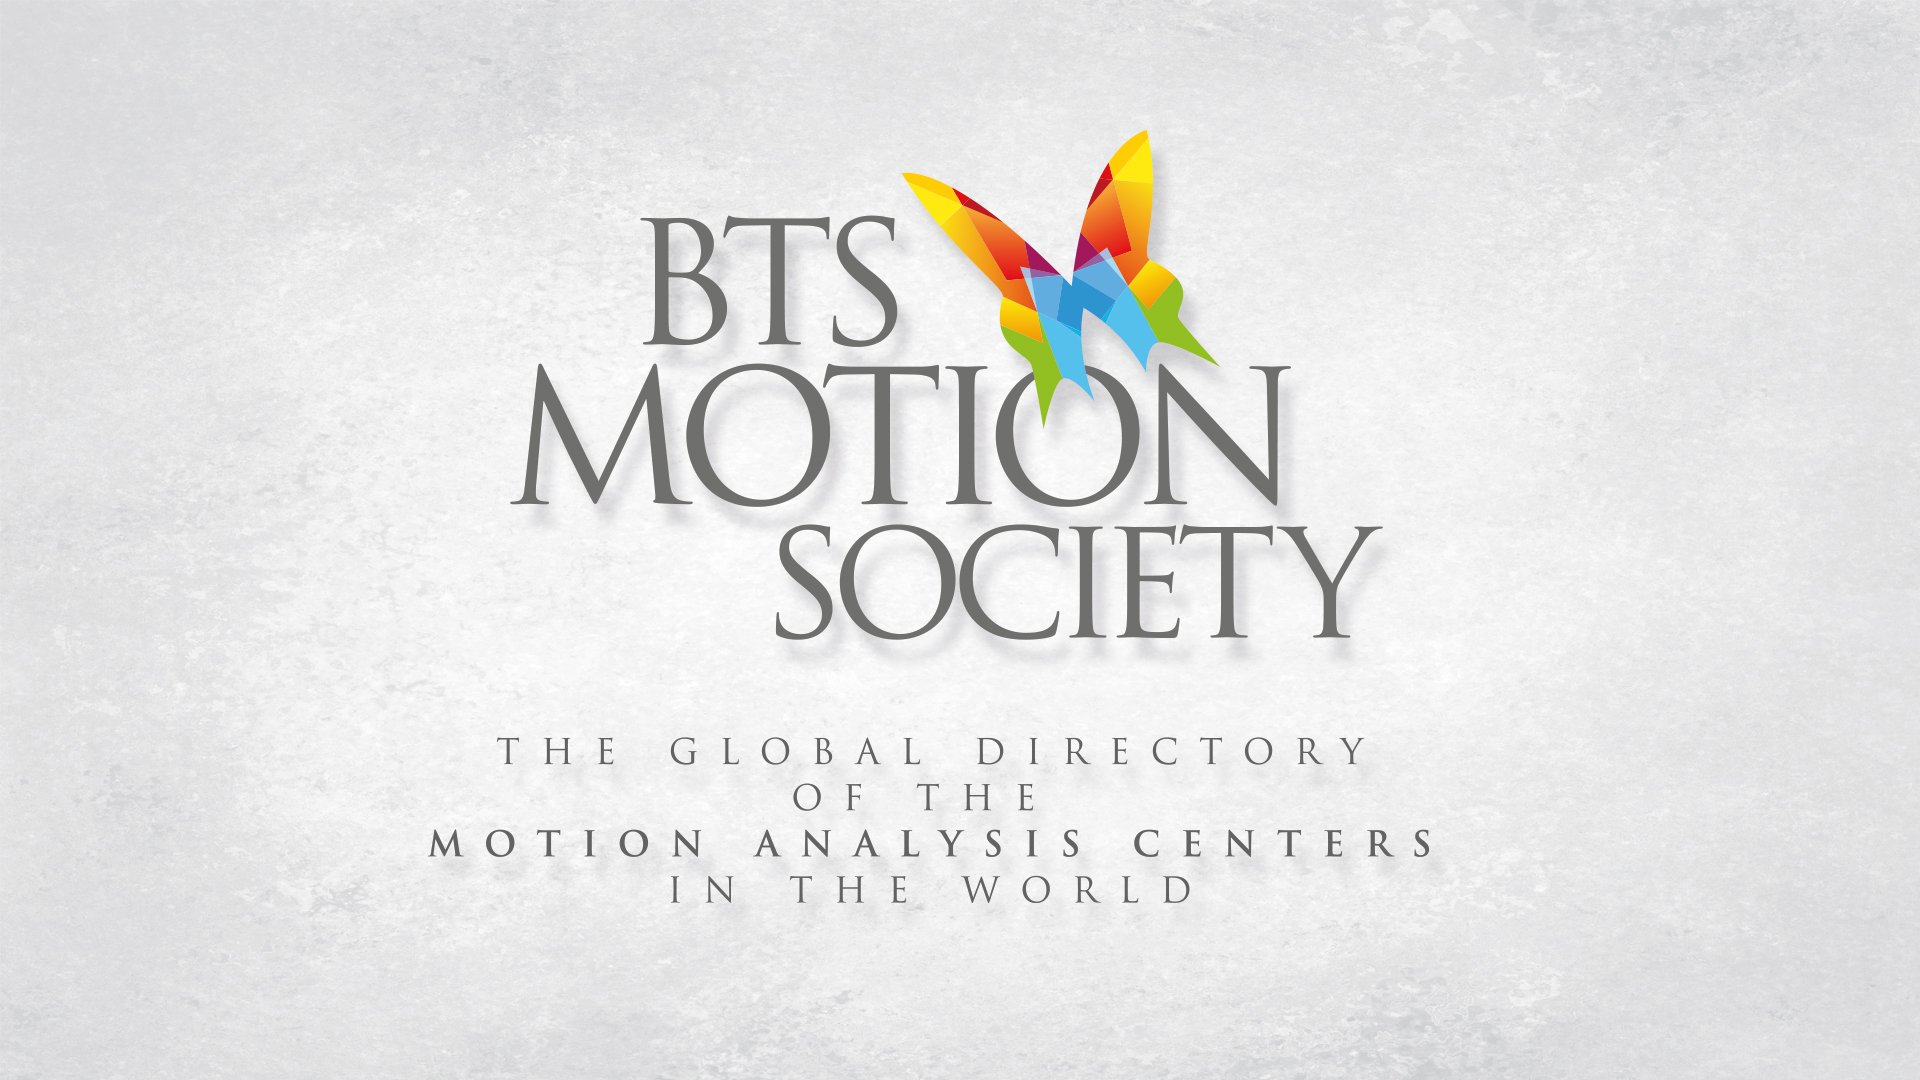 BTS MOTION SOCIETY